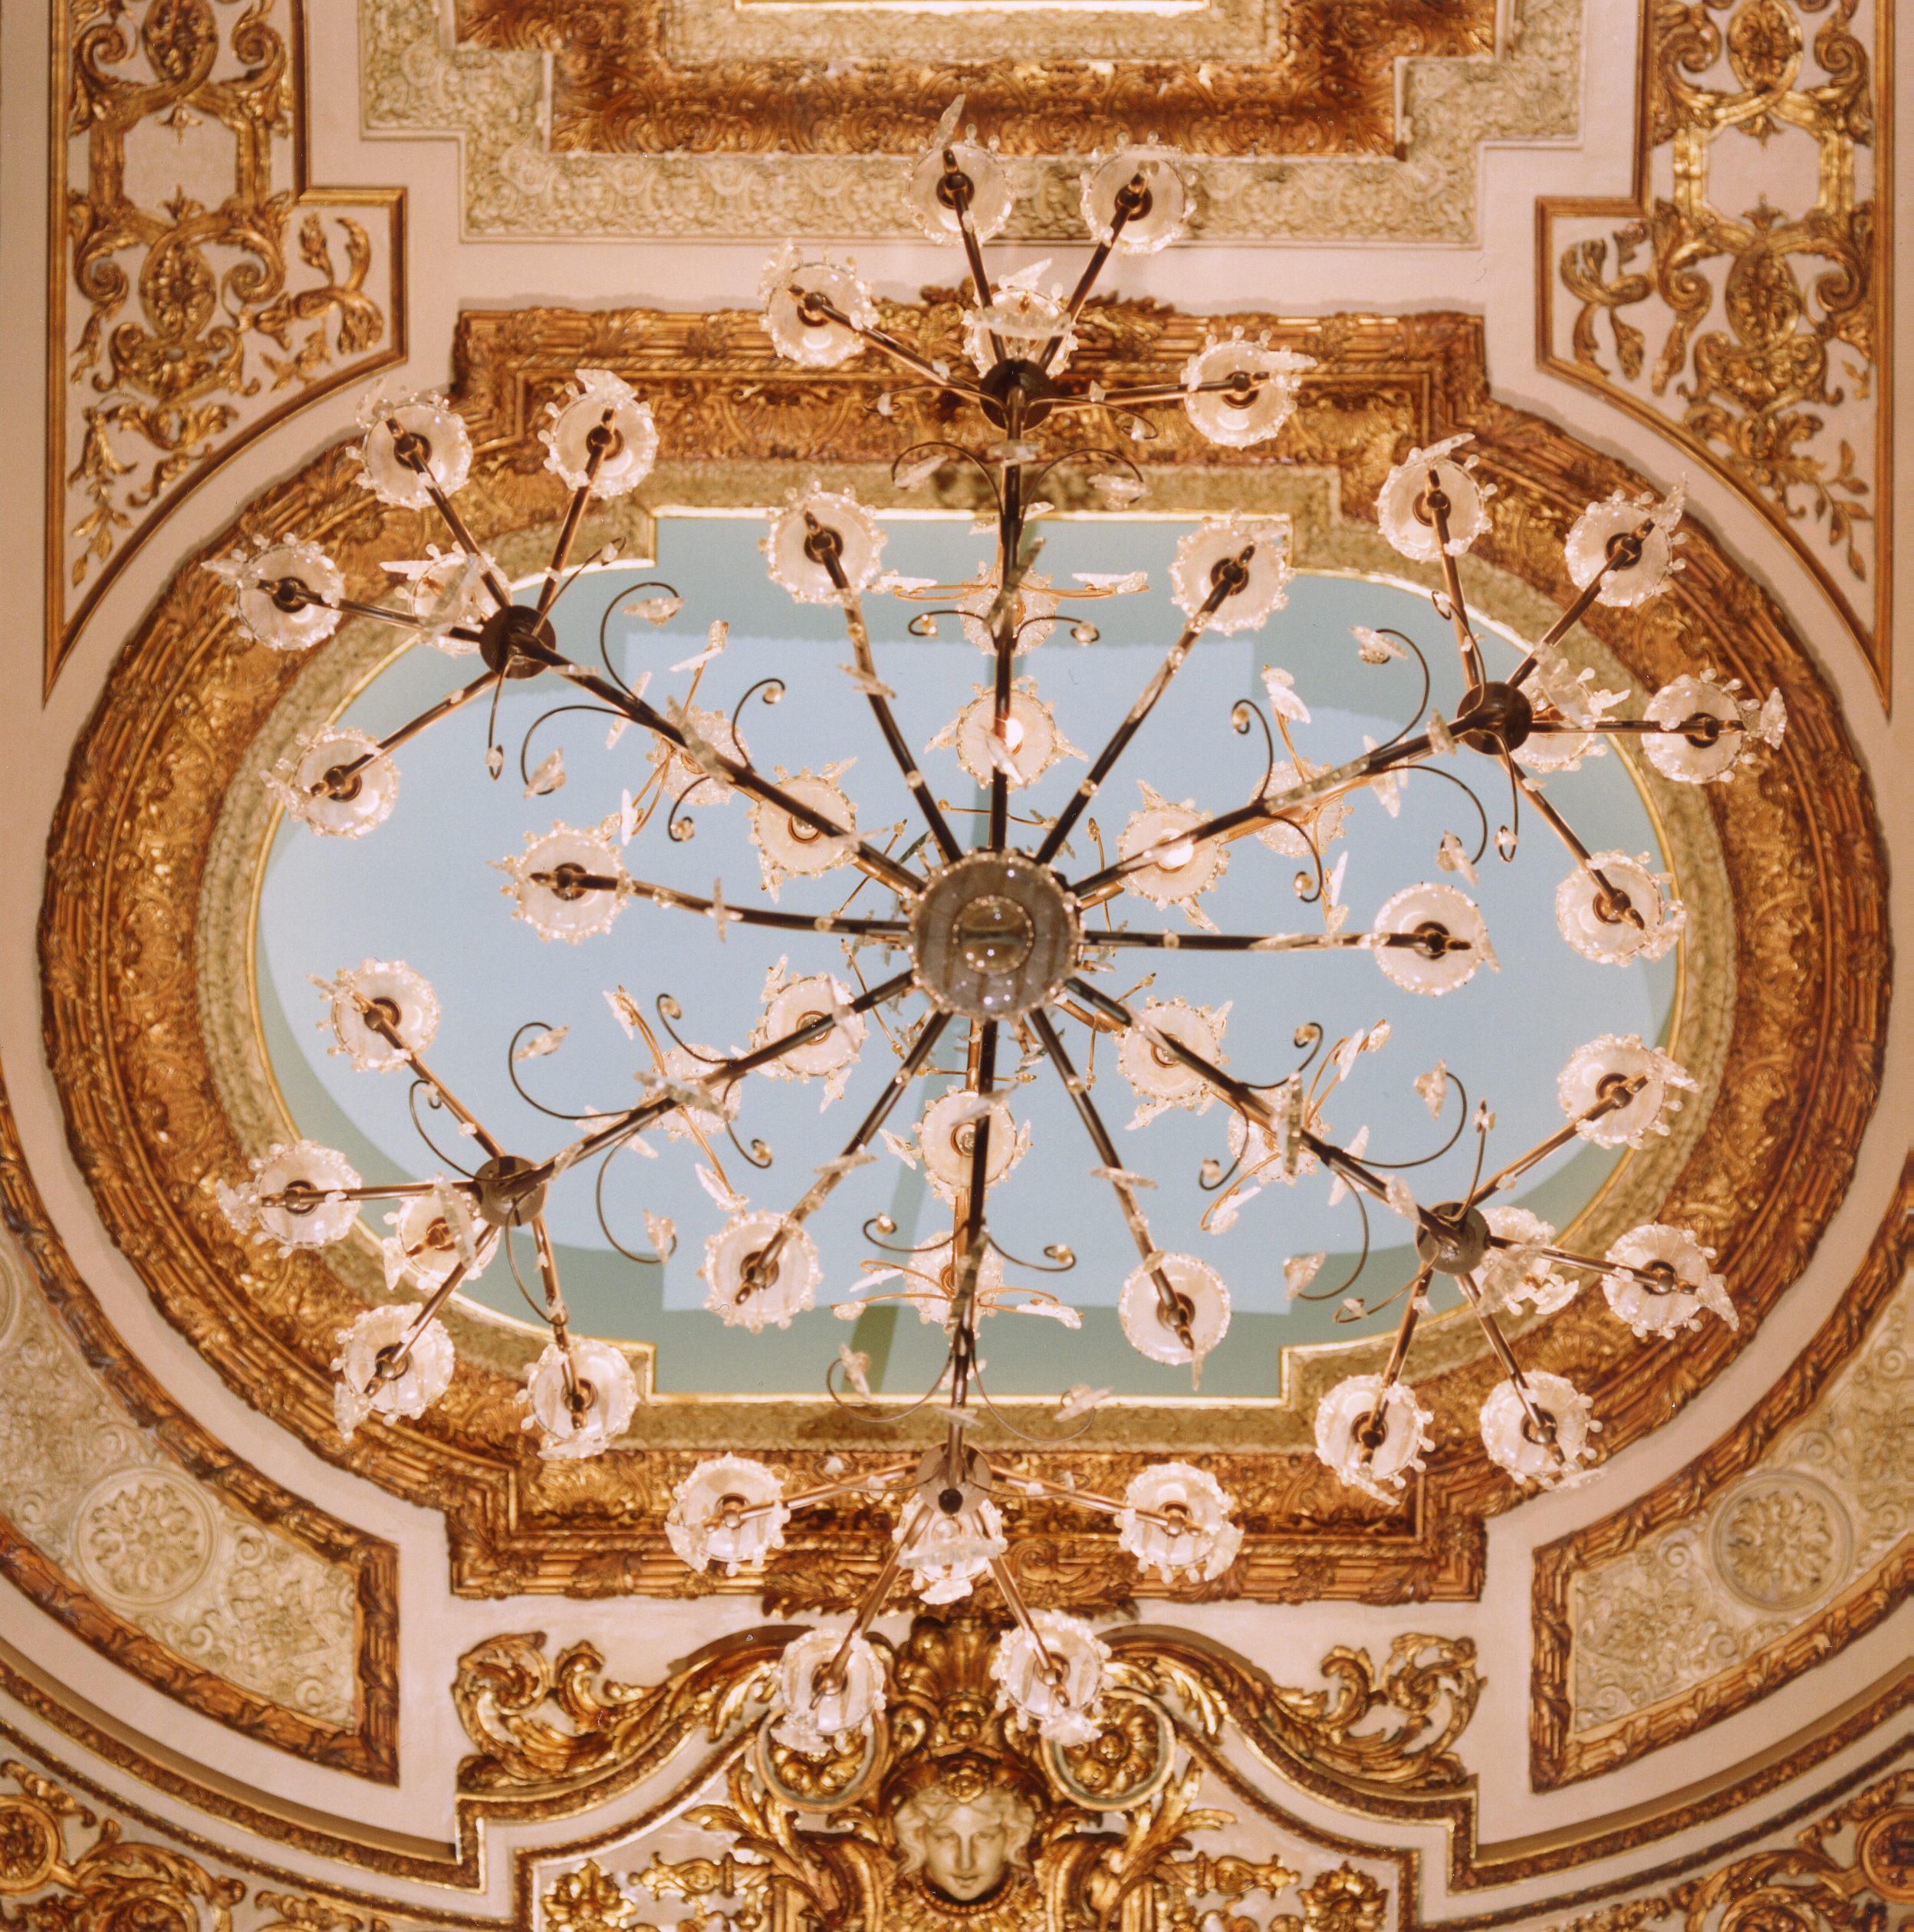 INTER_16_WHITNEY_COX_CEILING_CHAND_DETAIL.jpg